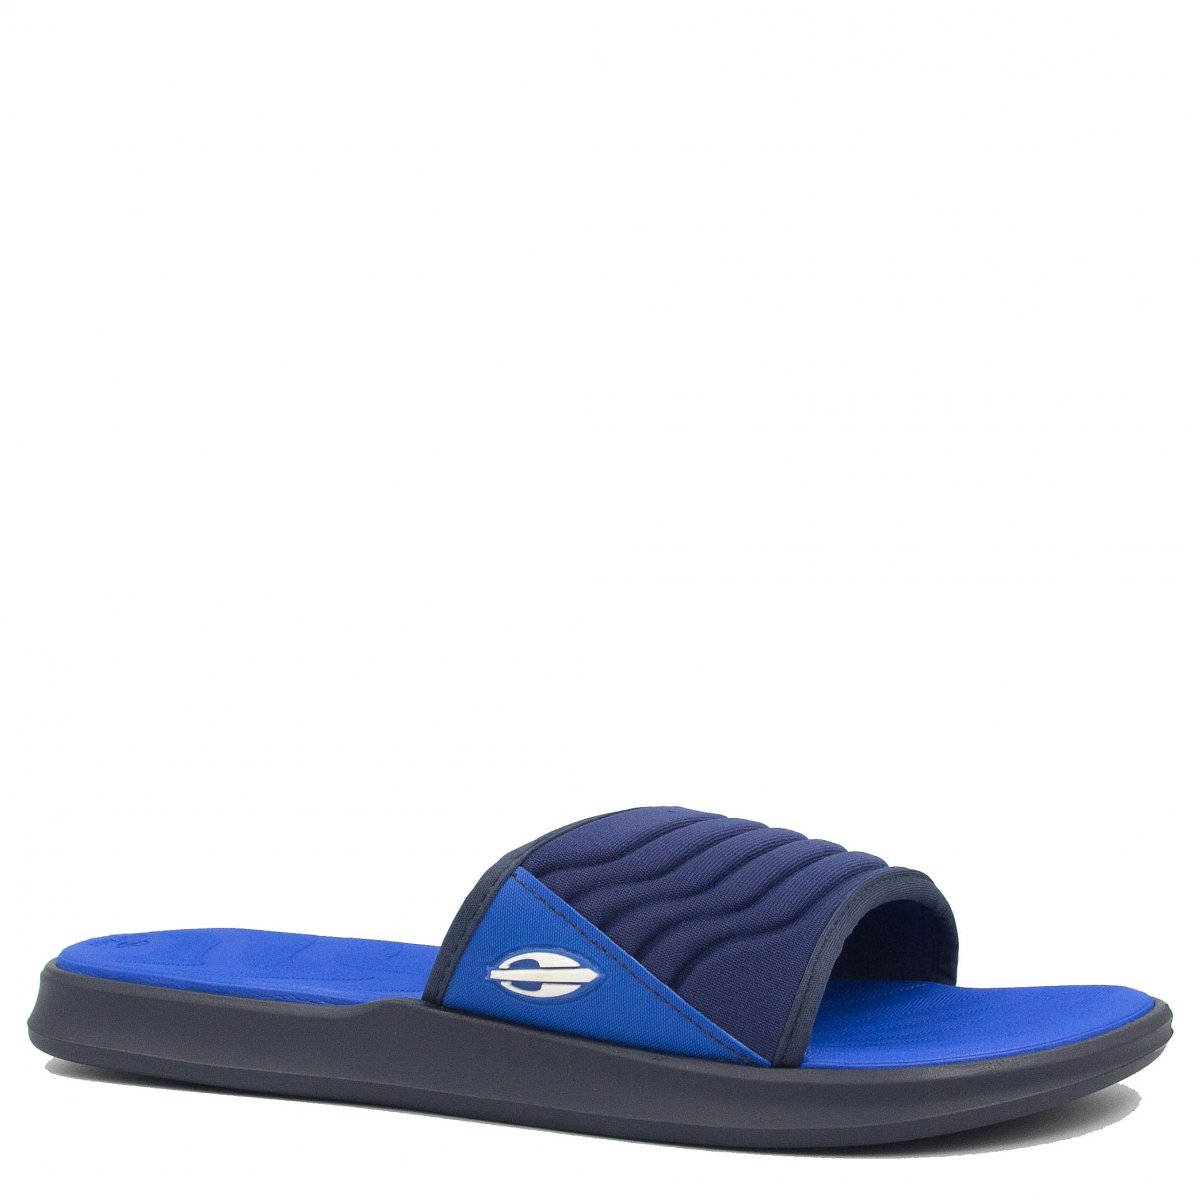 Chinelo Mormaii Slide Quiver Pro Azul